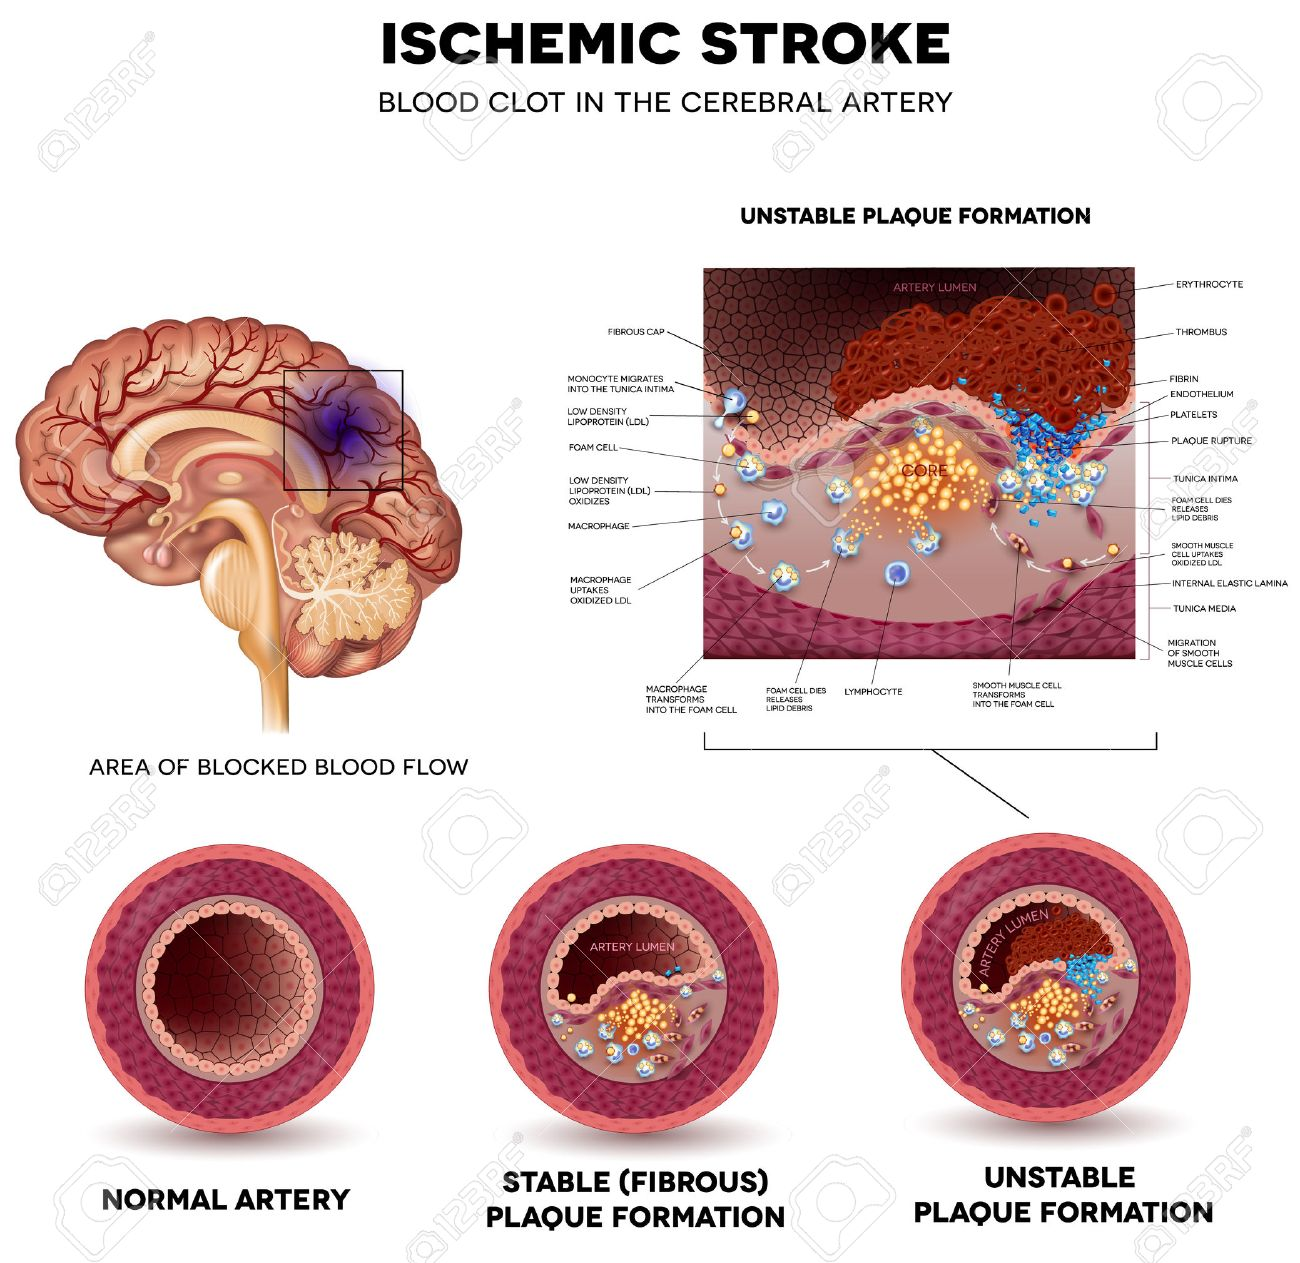 Ischemic Stroke In The Cerebral Artery. Stable And Unstable Plaque ...